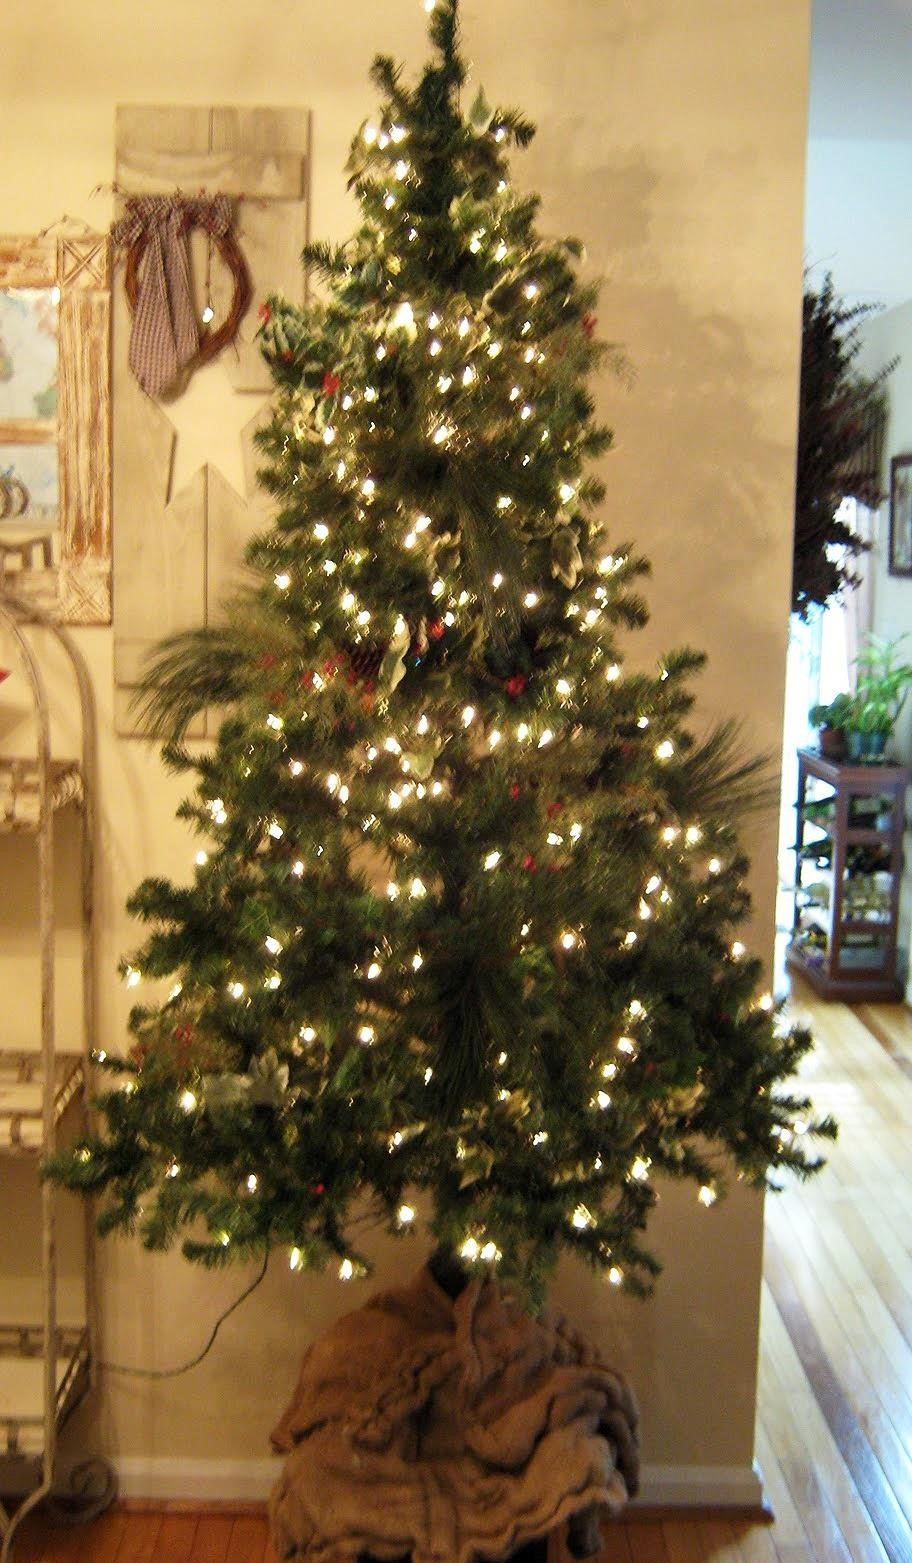 2 after looks like a full tree images via fake it frugal - Real Christmas Tree Decorated